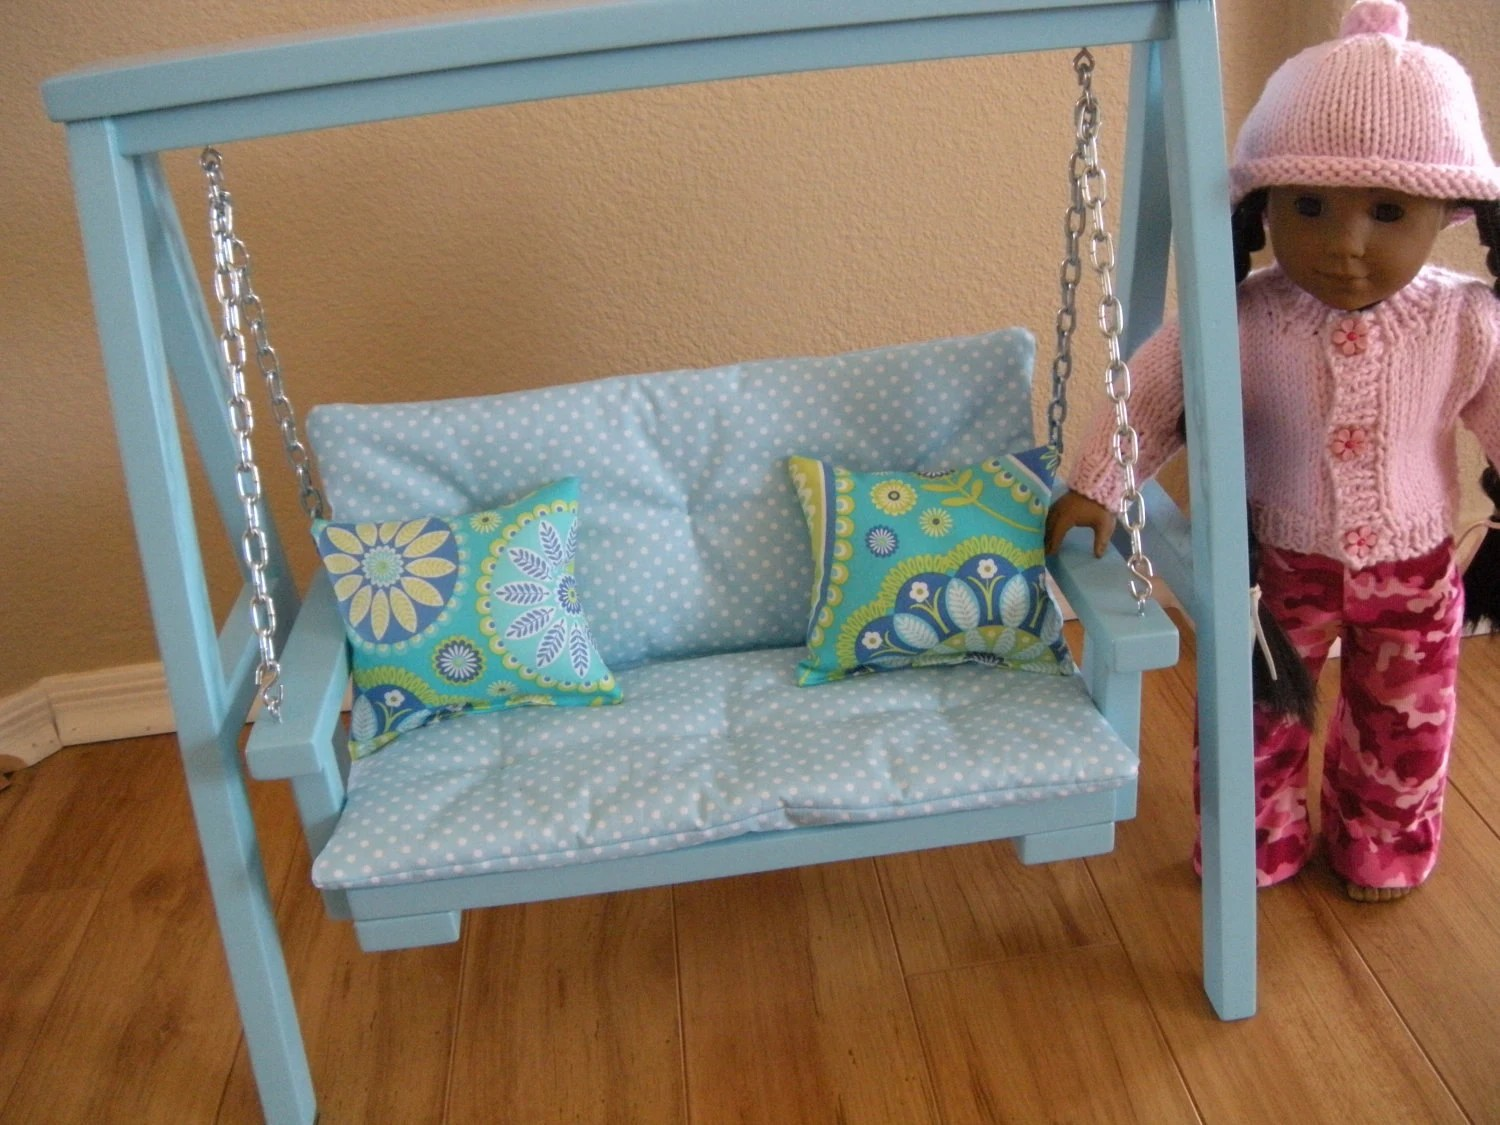 18 inch doll chair diy in a half available february swing set with cushion and throw